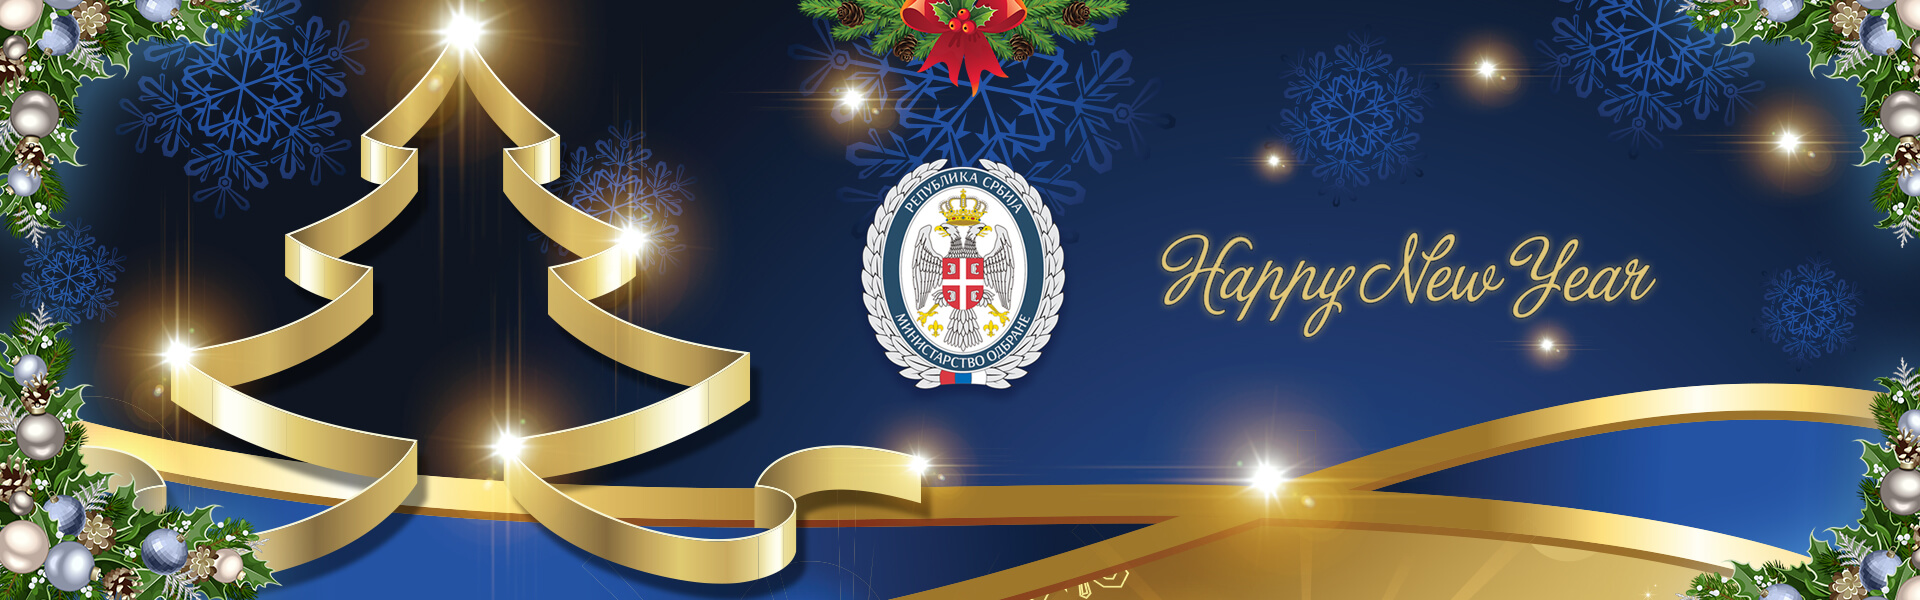 i would like to extend my best wishes to all members of the ministry of defence and the serbia armed forces on the new year holidays